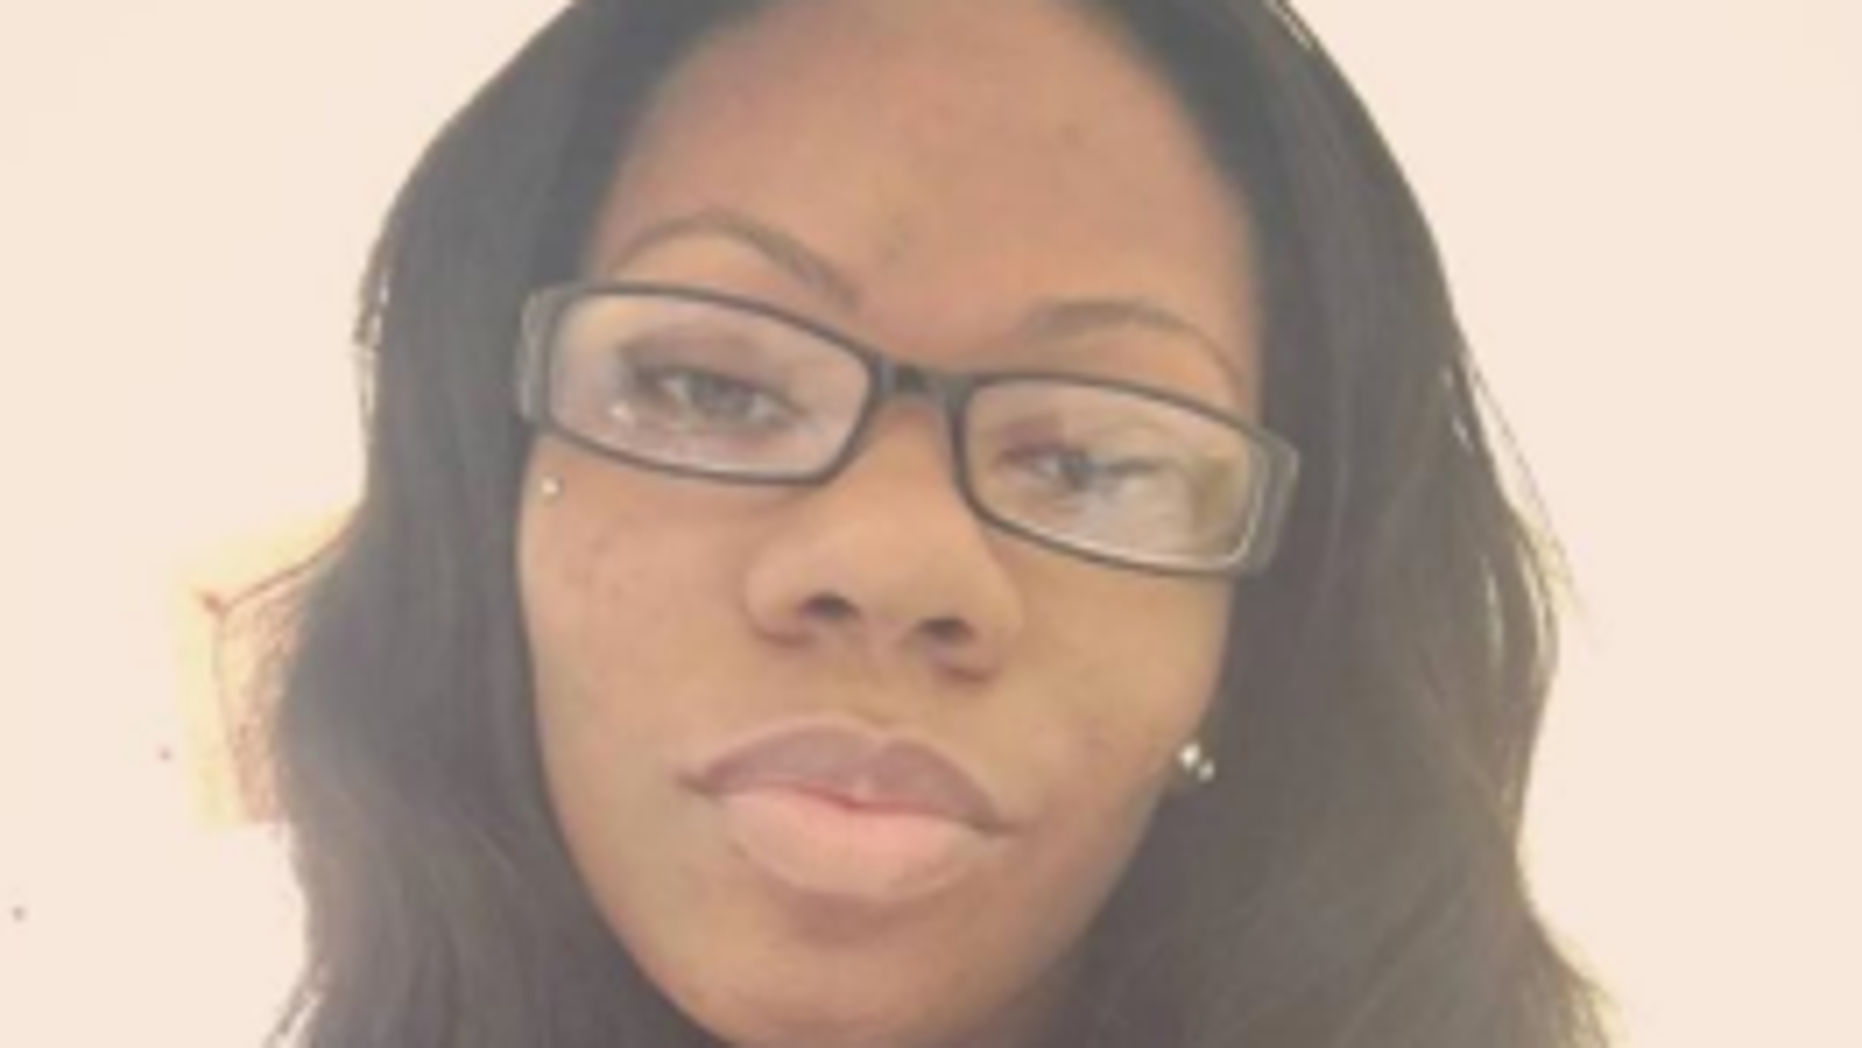 Shanaya Coley, 23, was reported missing last December. Her vehicle was found on Sunday with a body inside.